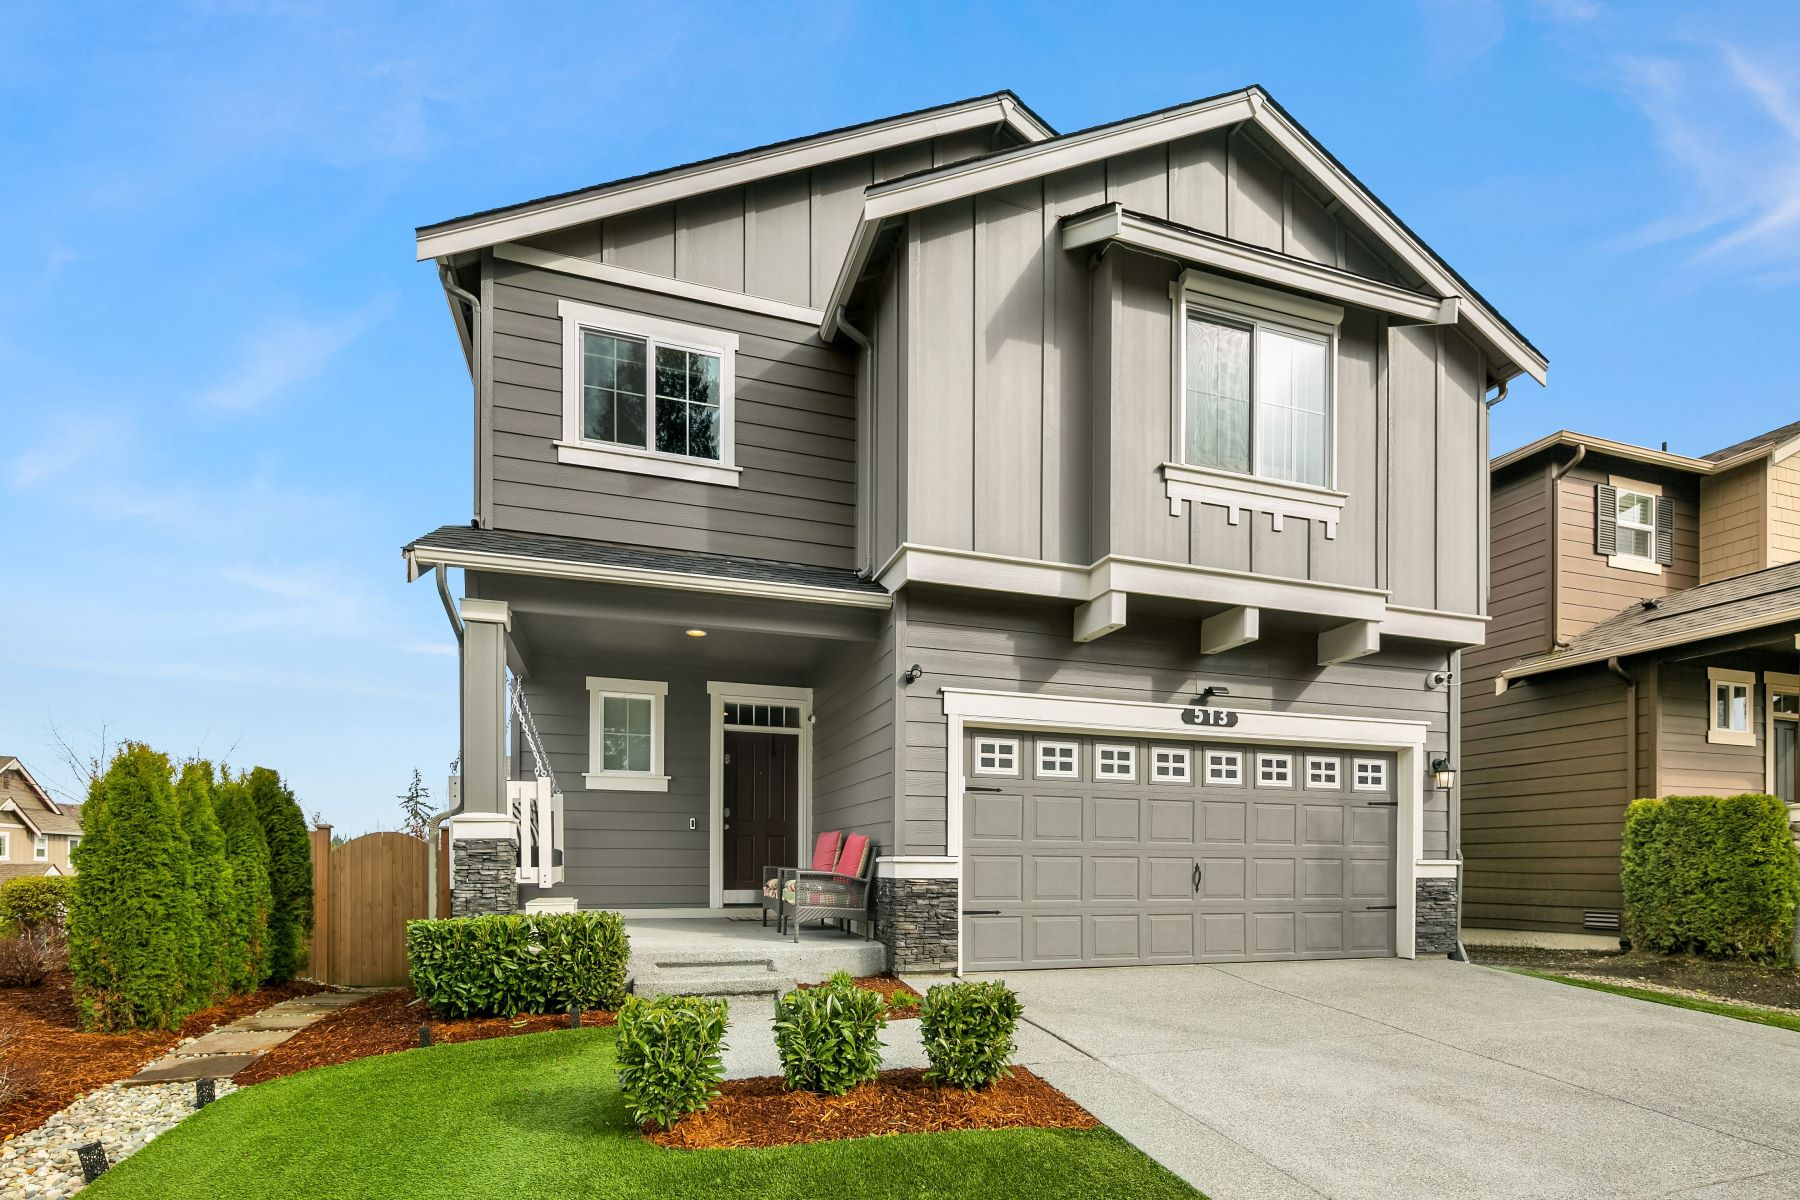 Single Family Homes for Sale at 513 203rd Place Southwest, Lynnwood, WA 98036 513 203rd Place SW Lynnwood, Washington 98036 United States